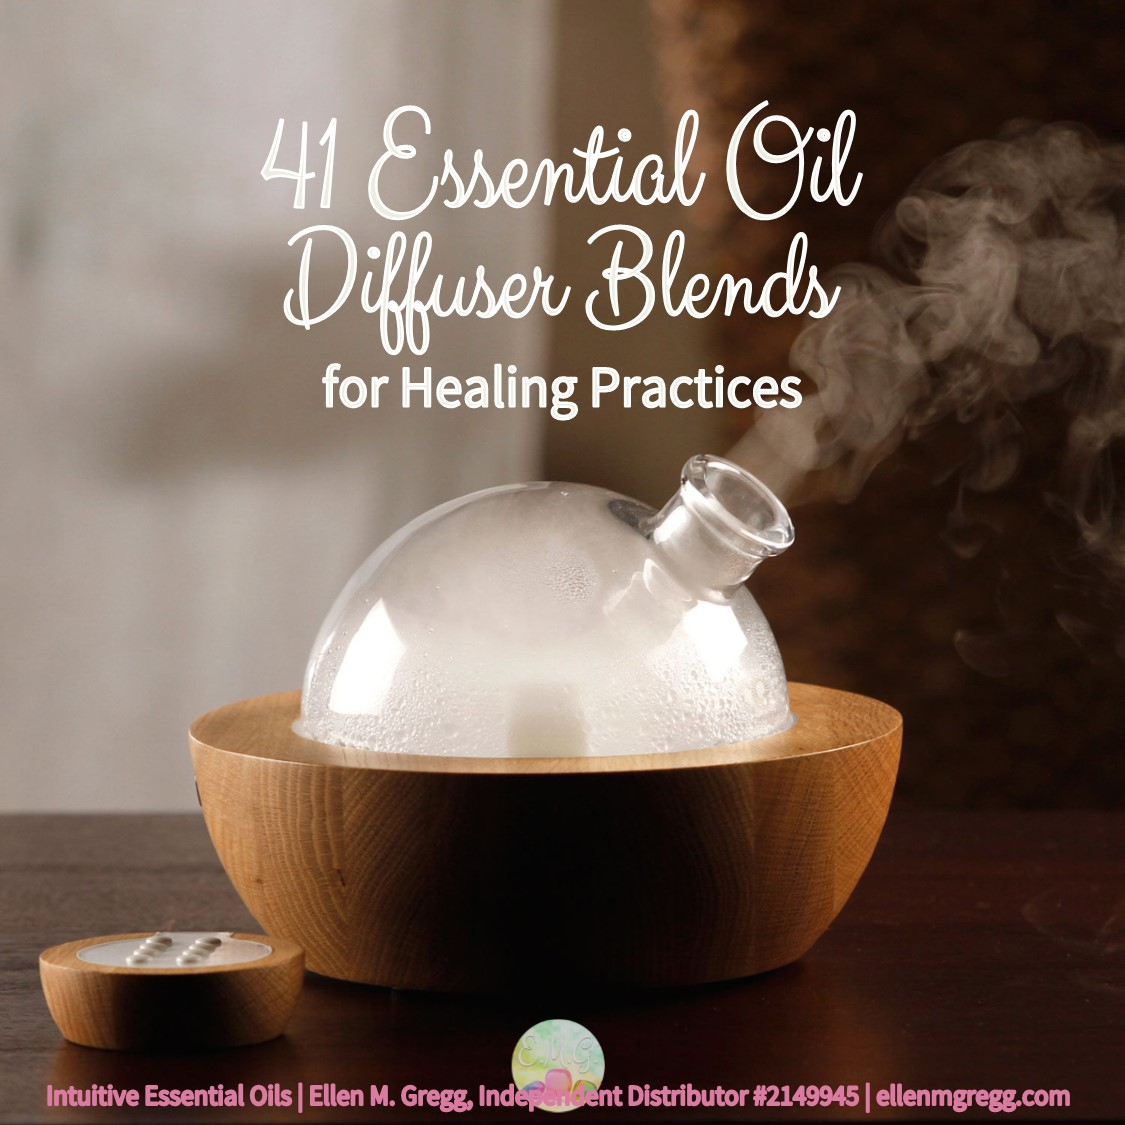 41 Essential Oil Diffuser Blends for Healing Practices